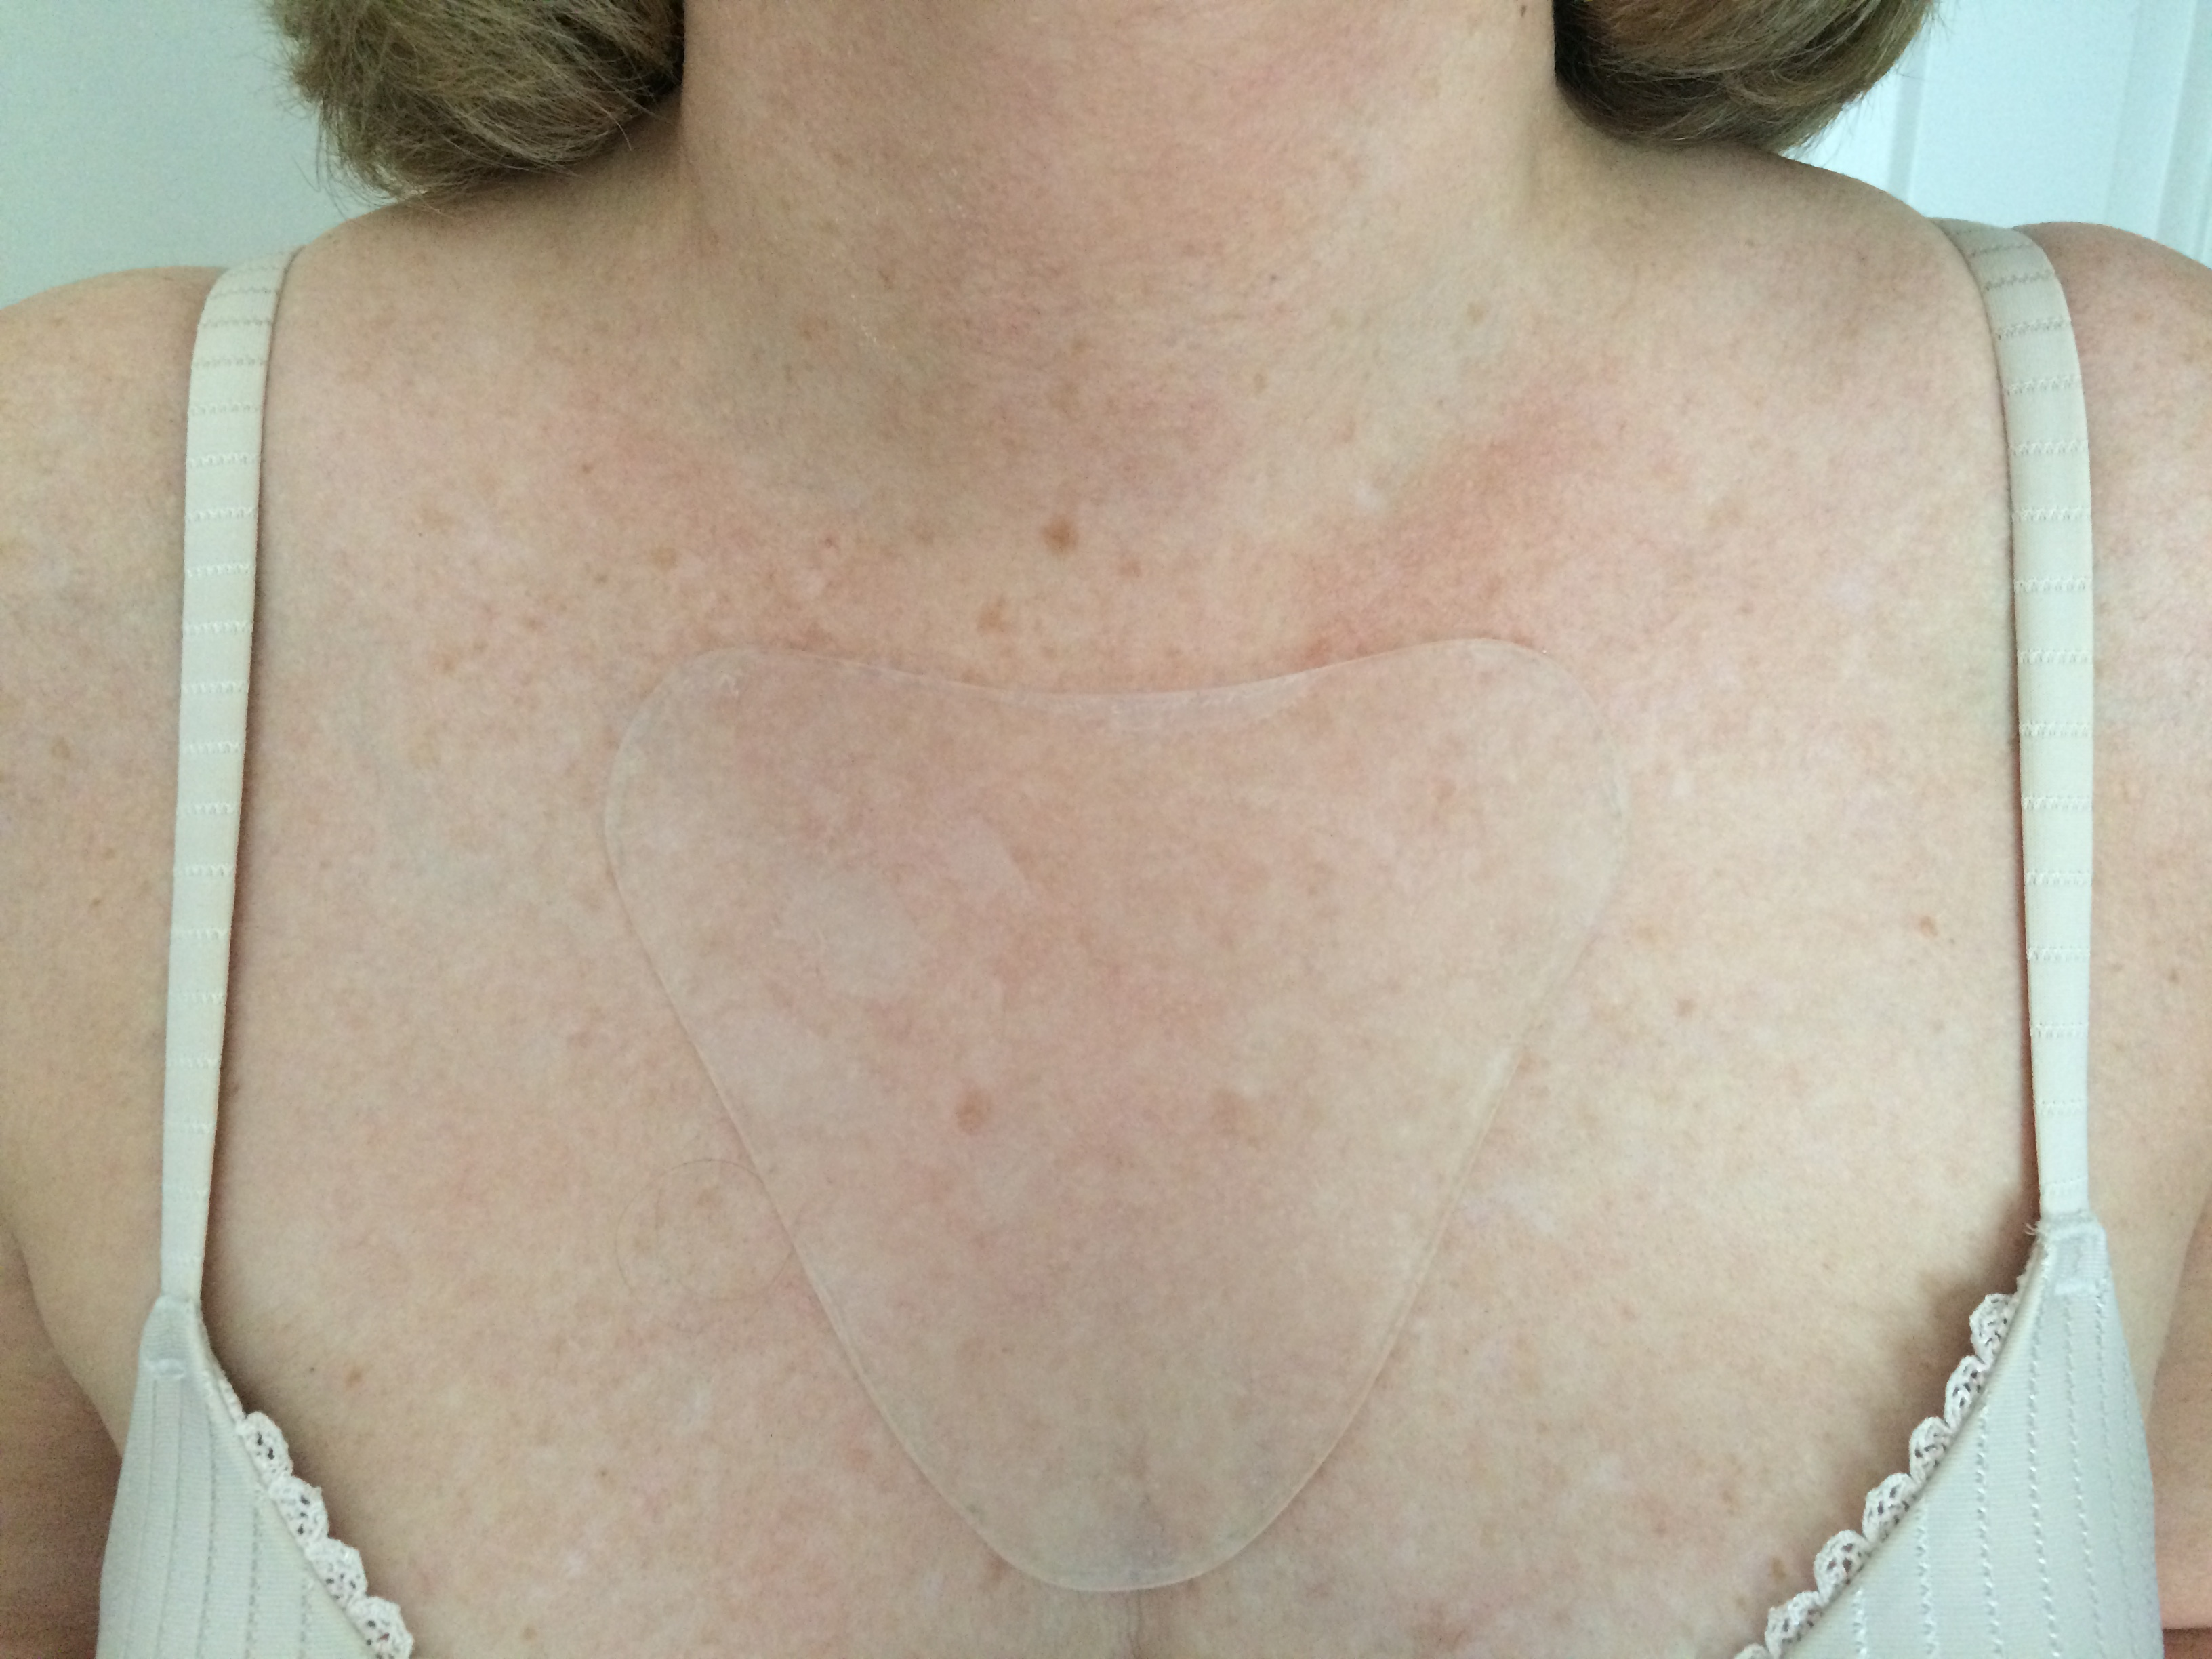 Prevent neck and chest wrinkles